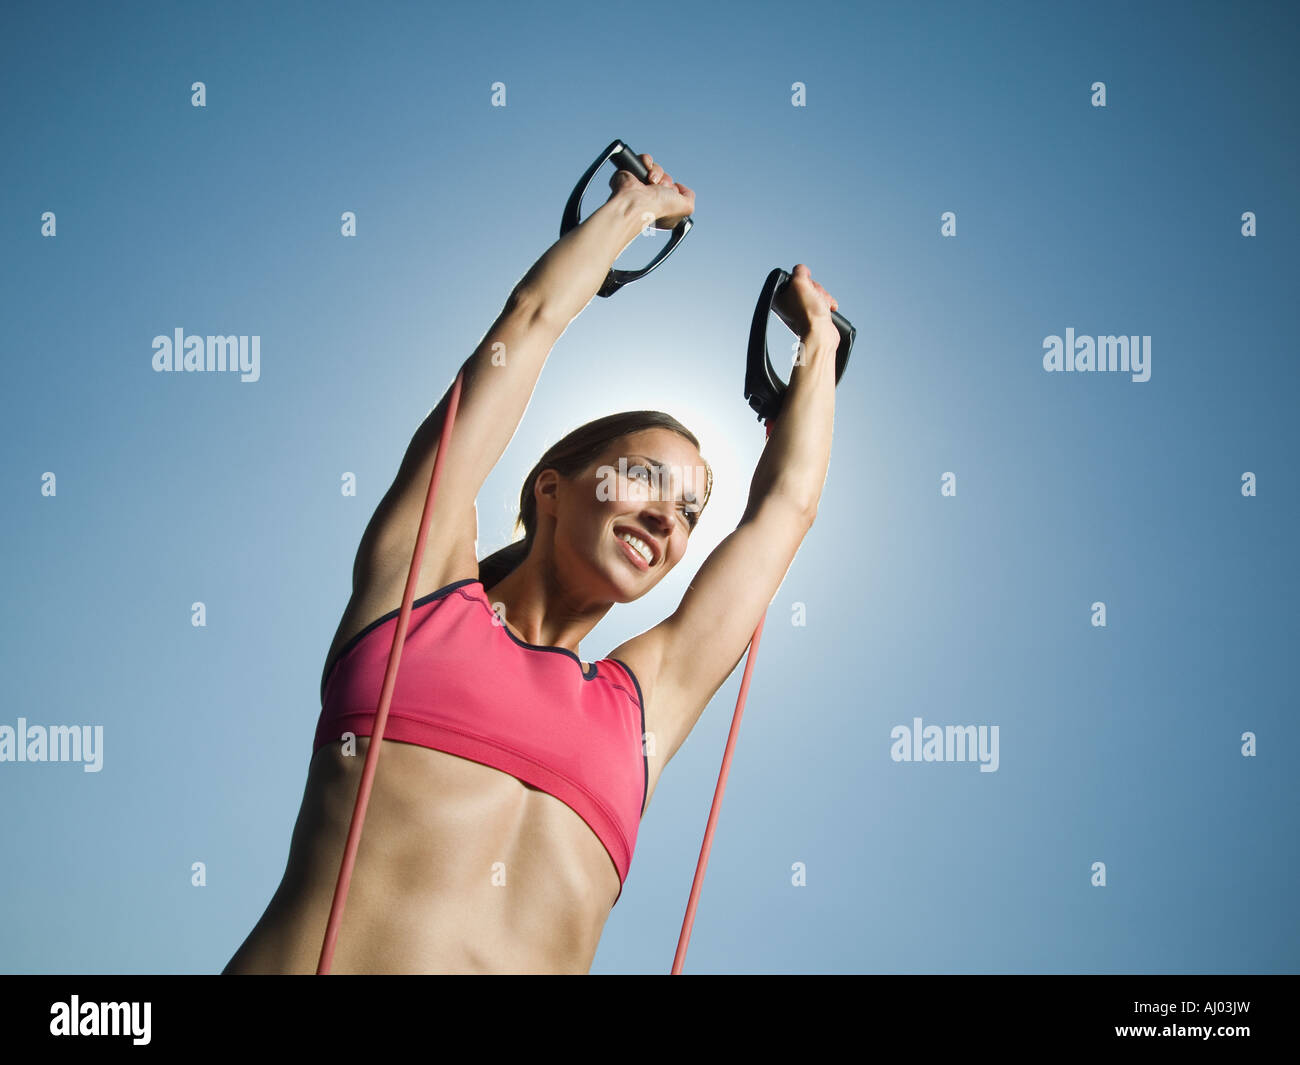 Woman in athletic gear exercising - Stock Image